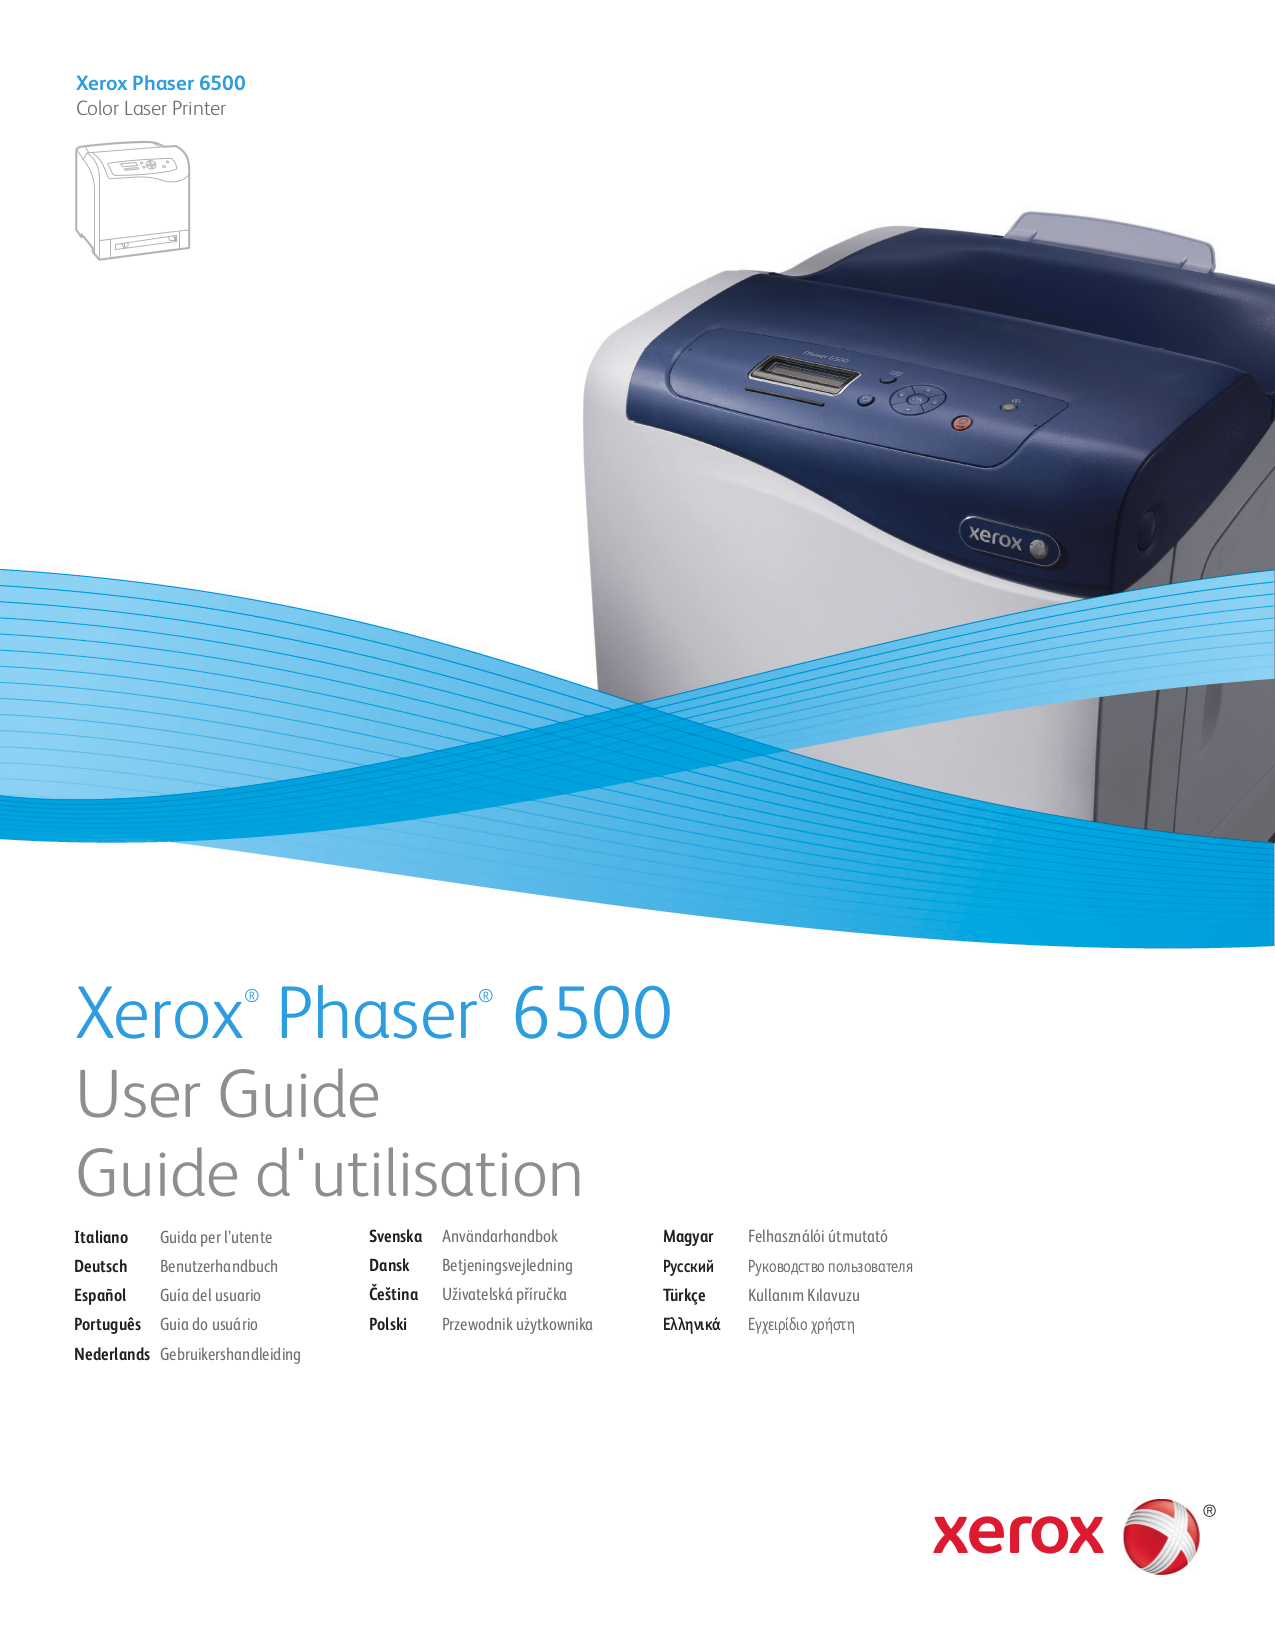 pdf manual for xerox printer phaser 7760